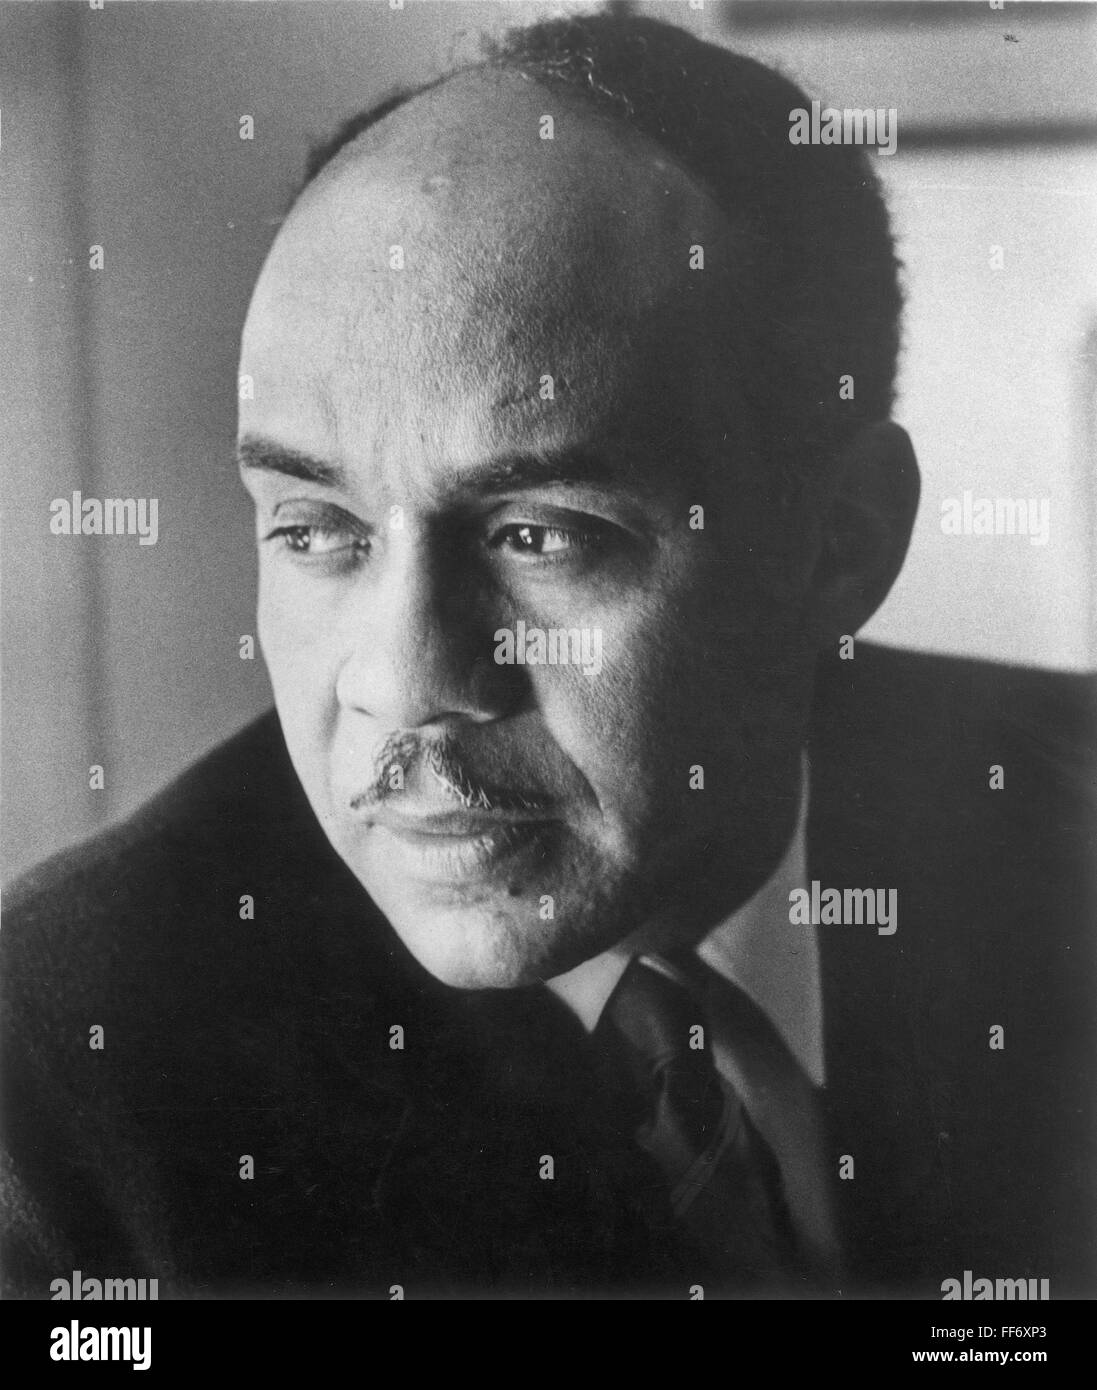 RALPH ELLISON (1914-1994). /nAmerican writer. Stock Photo